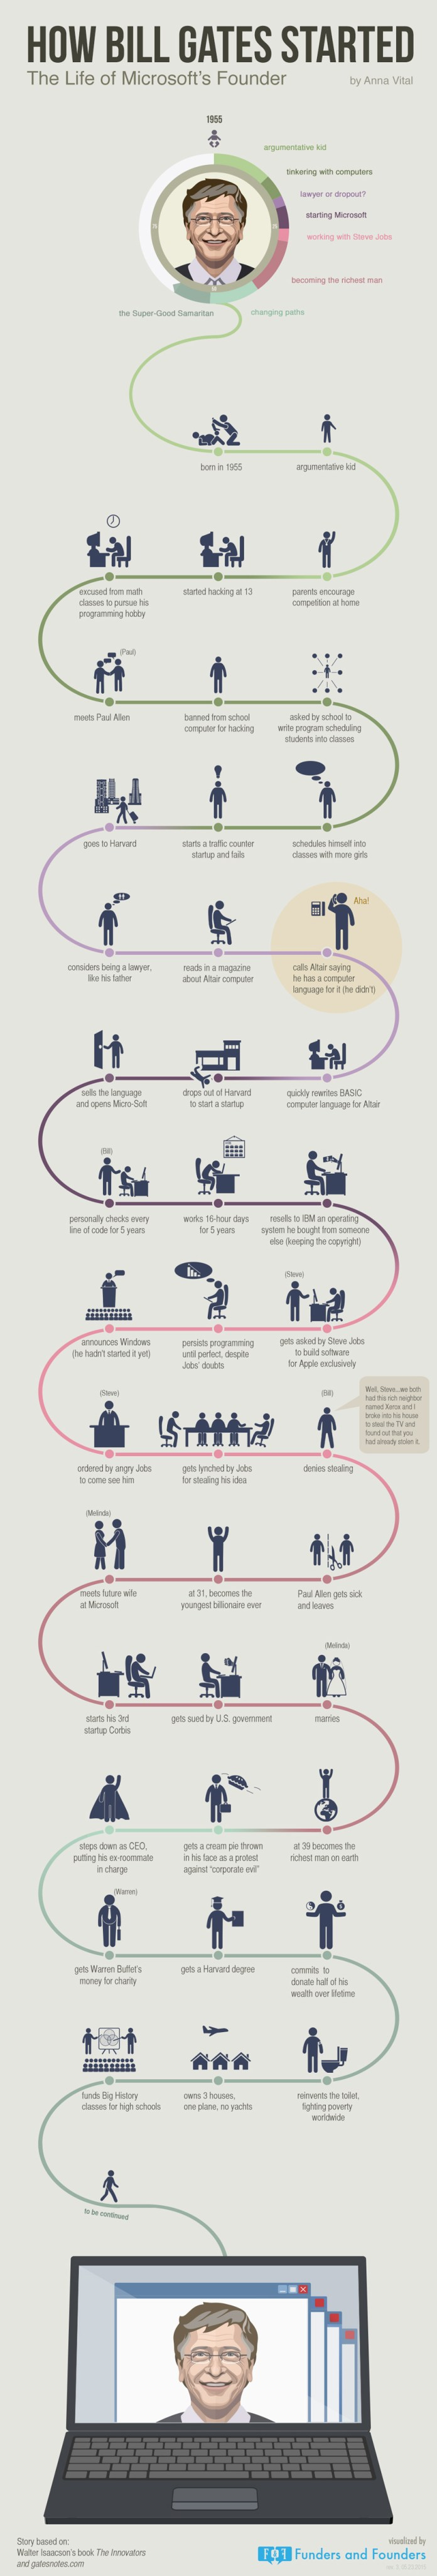 how-bill-gates-started-microsoft-founder-motivational and inspirational infographic